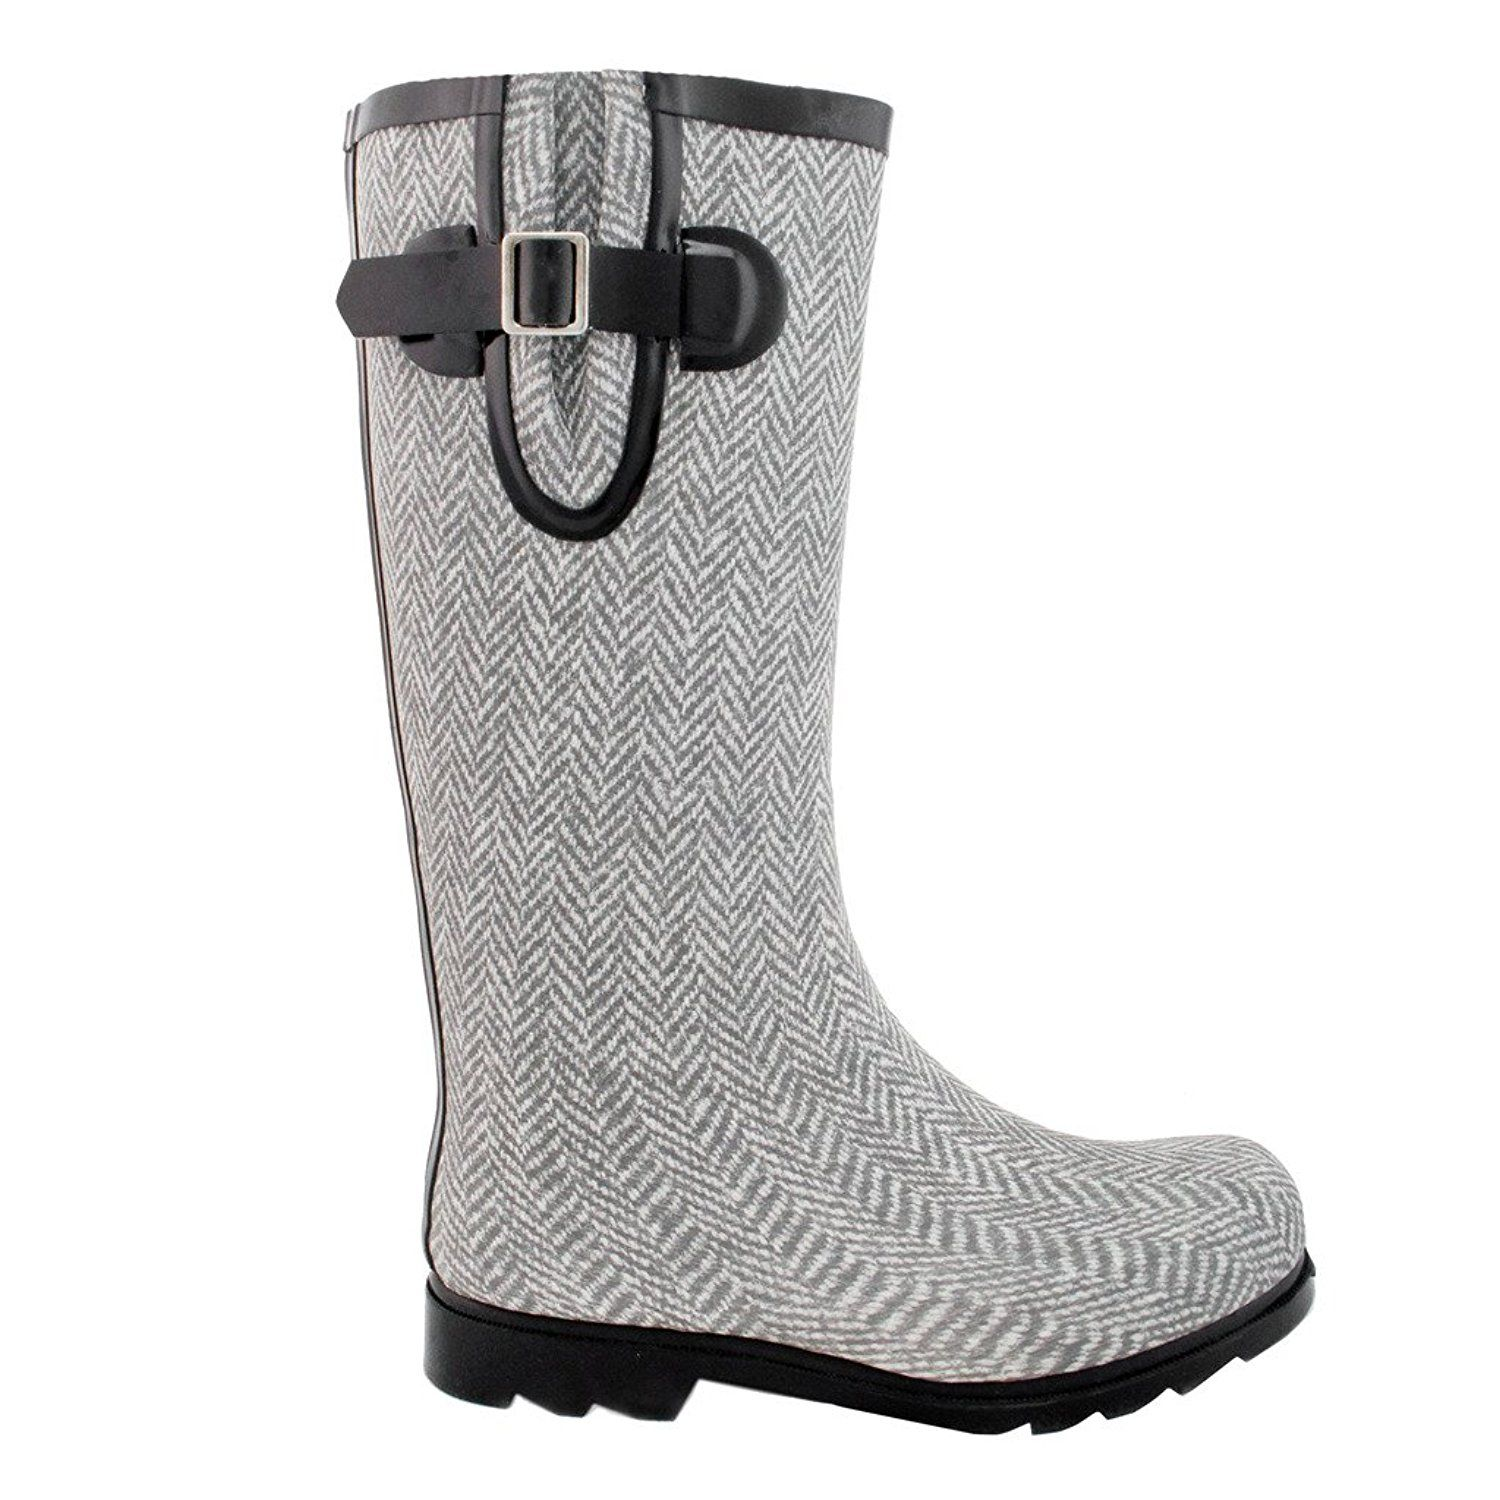 Nomad Women's Puddles Hurricane Rain Boot TRENDS SNJ SHOES >>> Want to know more, click on the image.